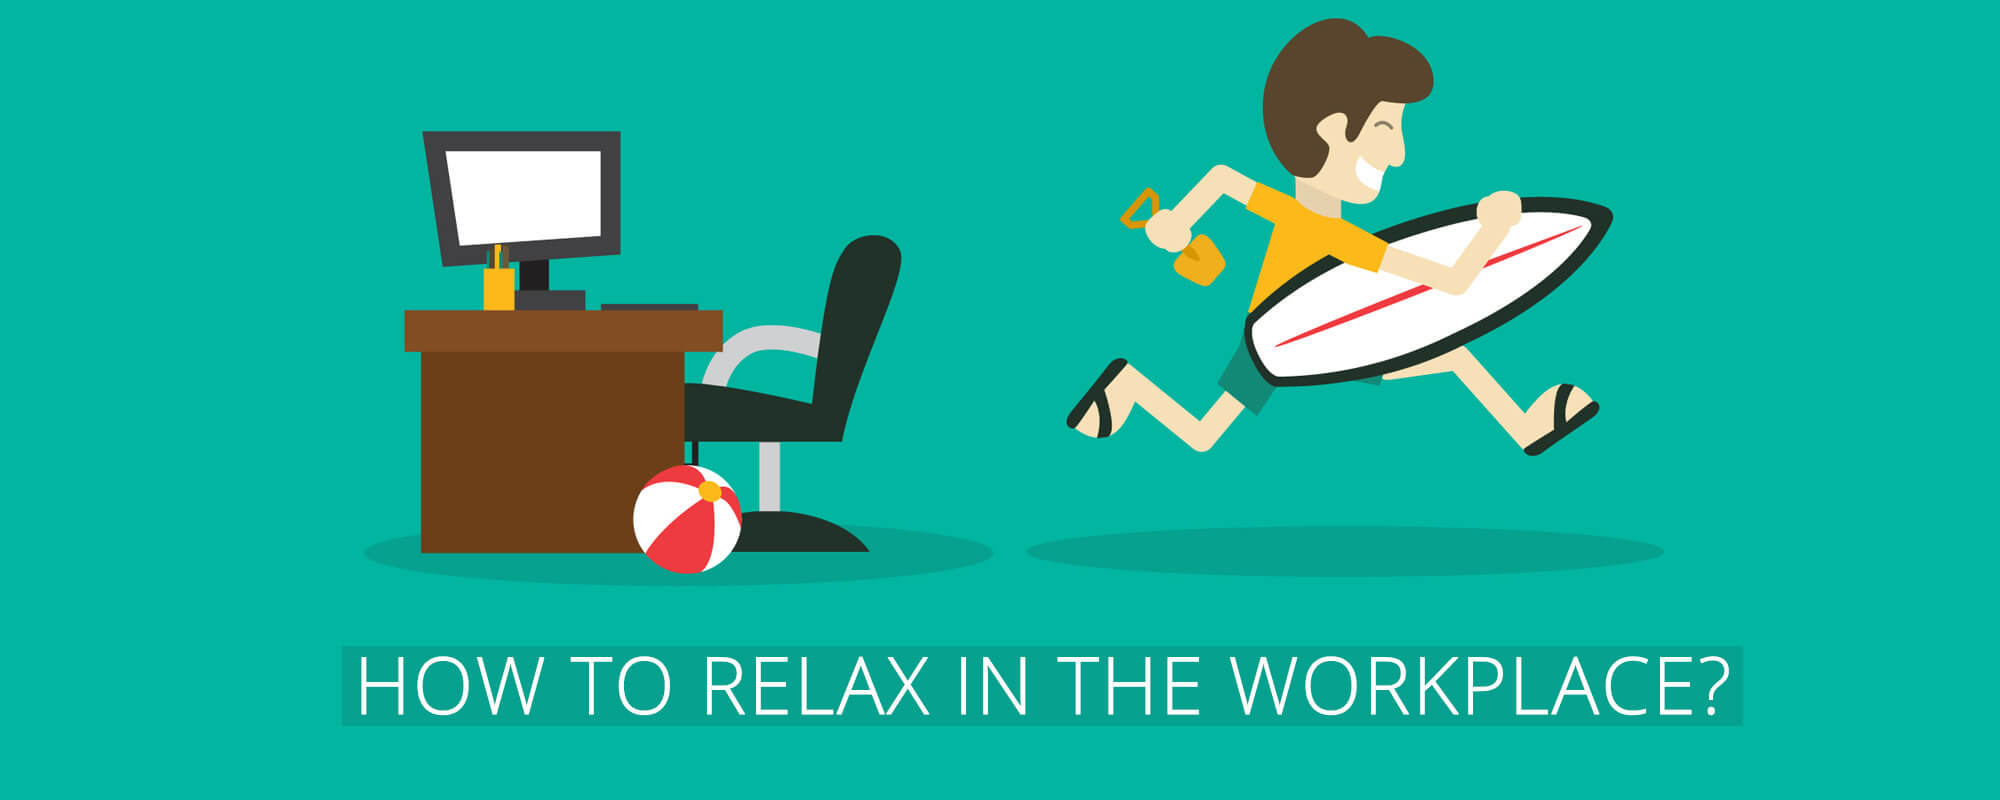 How to Relax in the Workplace?